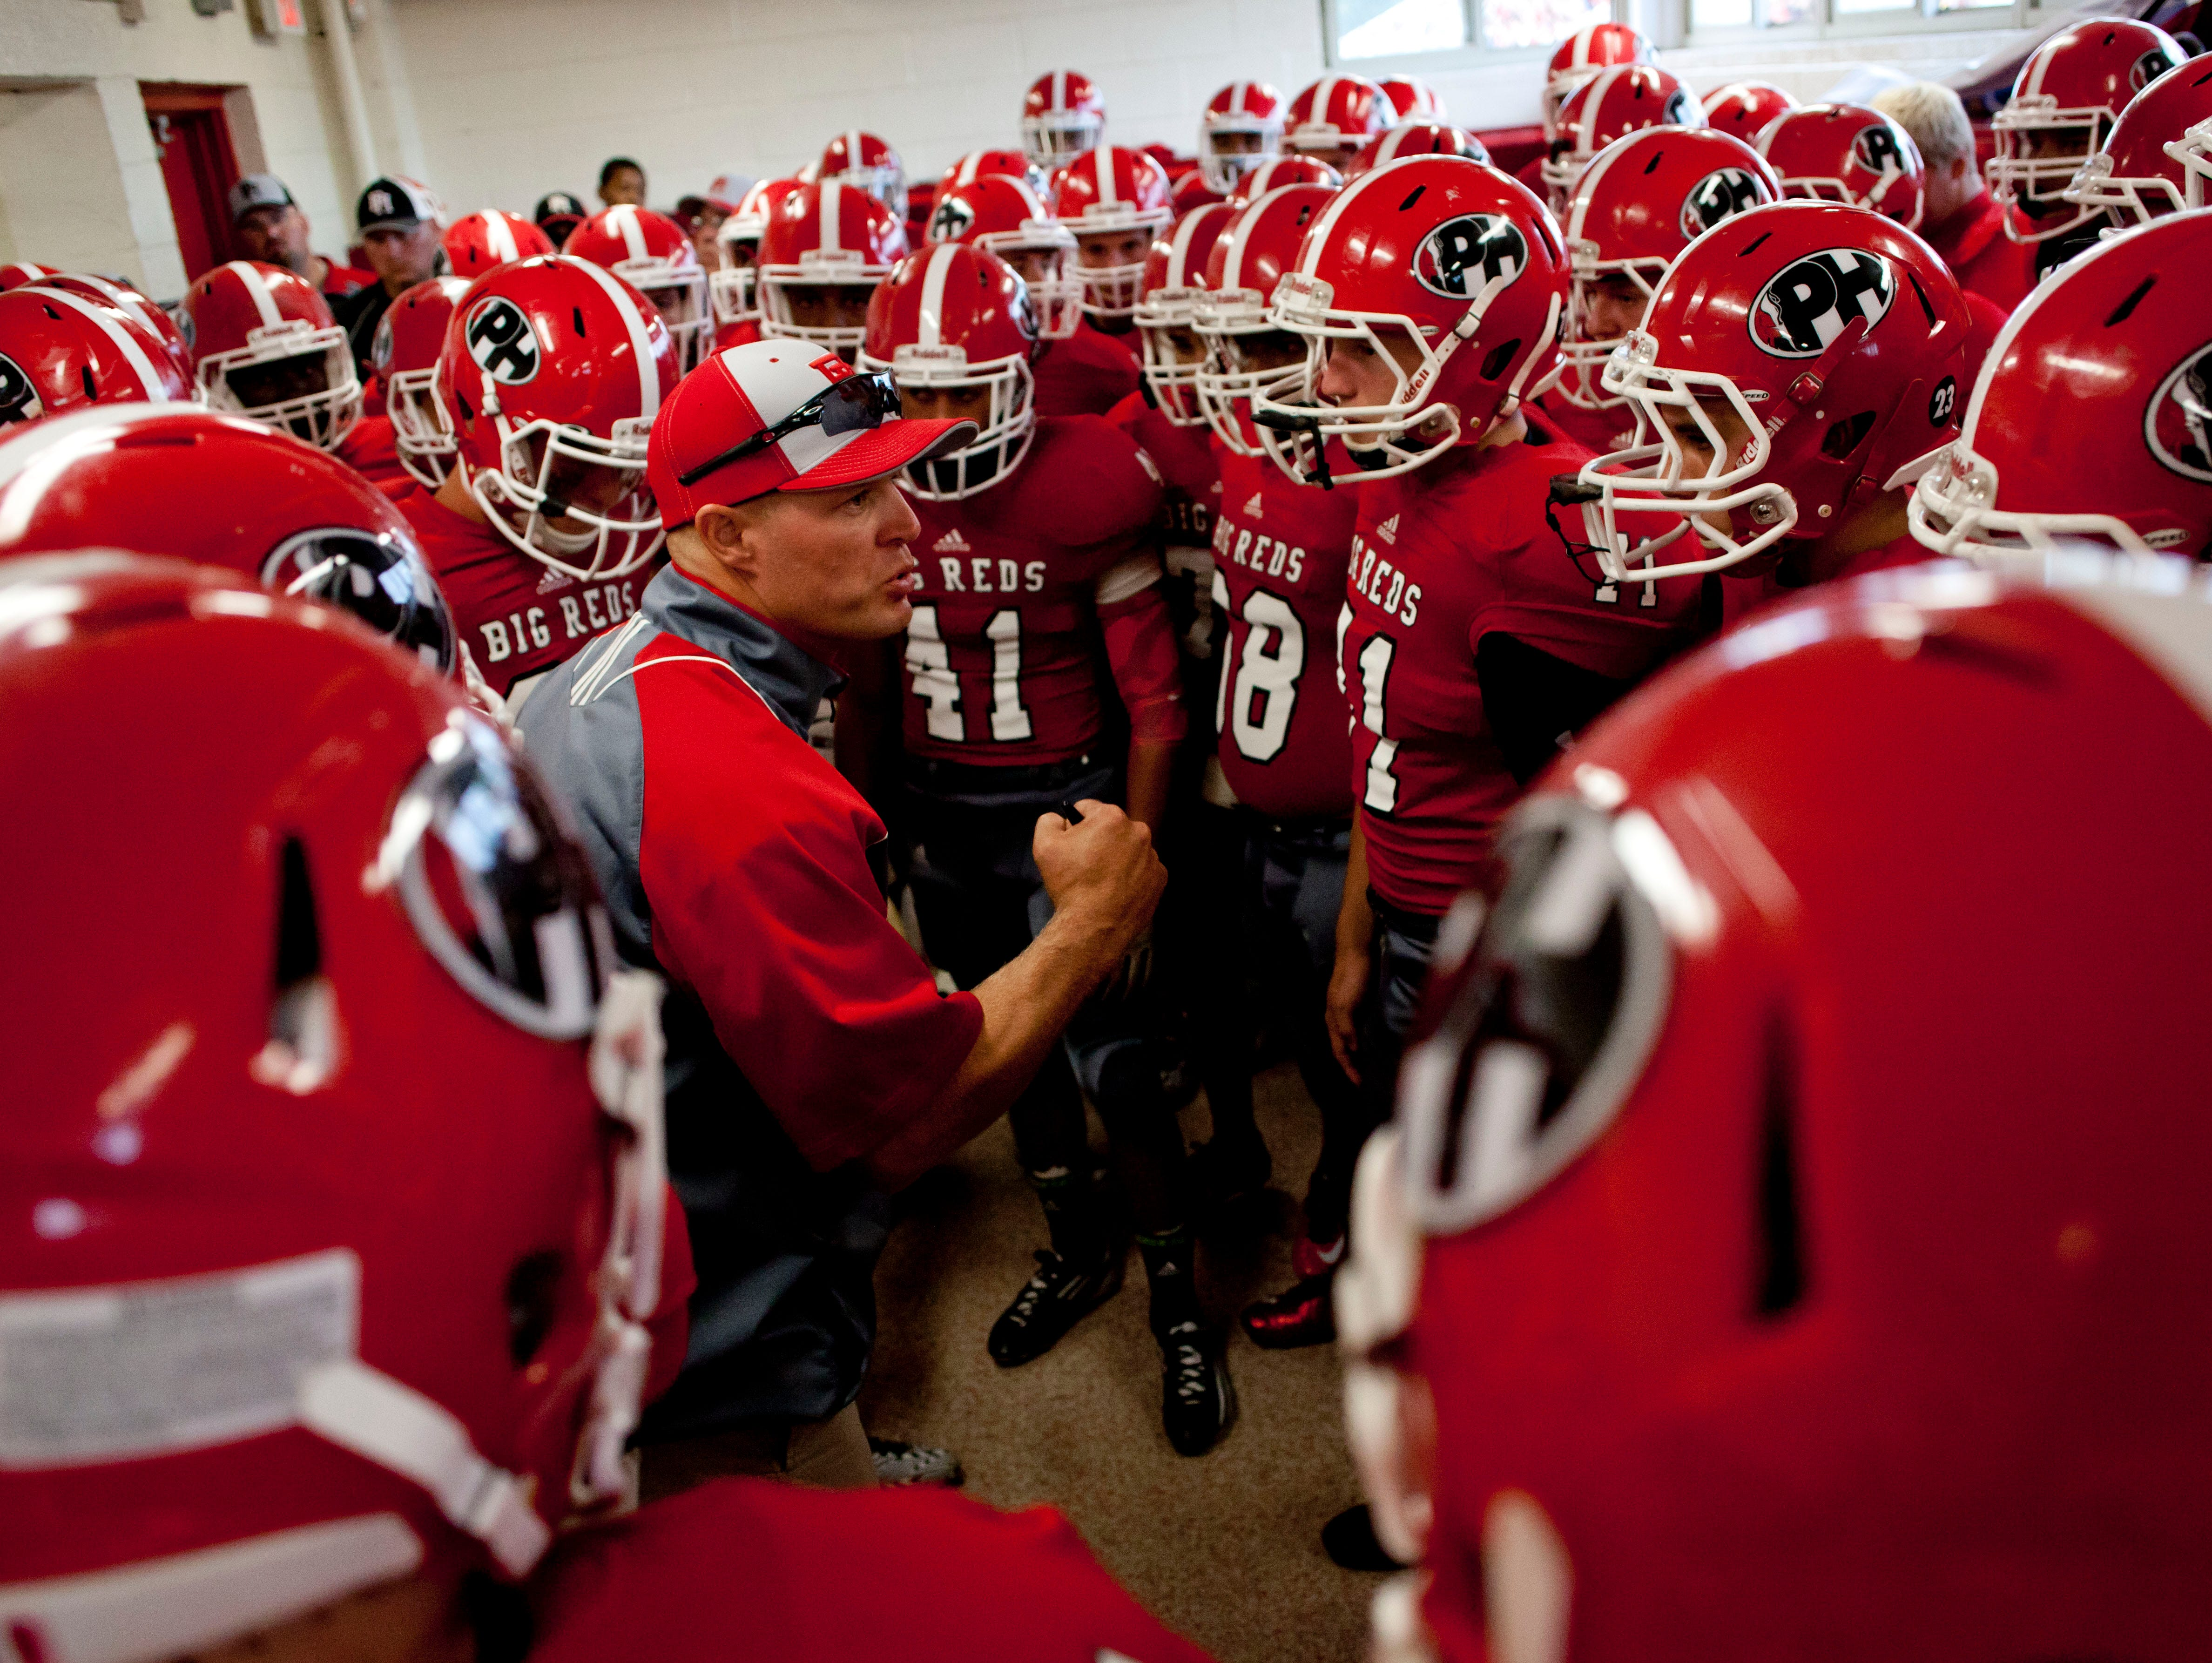 Port Huron coach Ryan Mullins talks to players in the locker room during a football game August 29, 2014 at Port Huron High School.